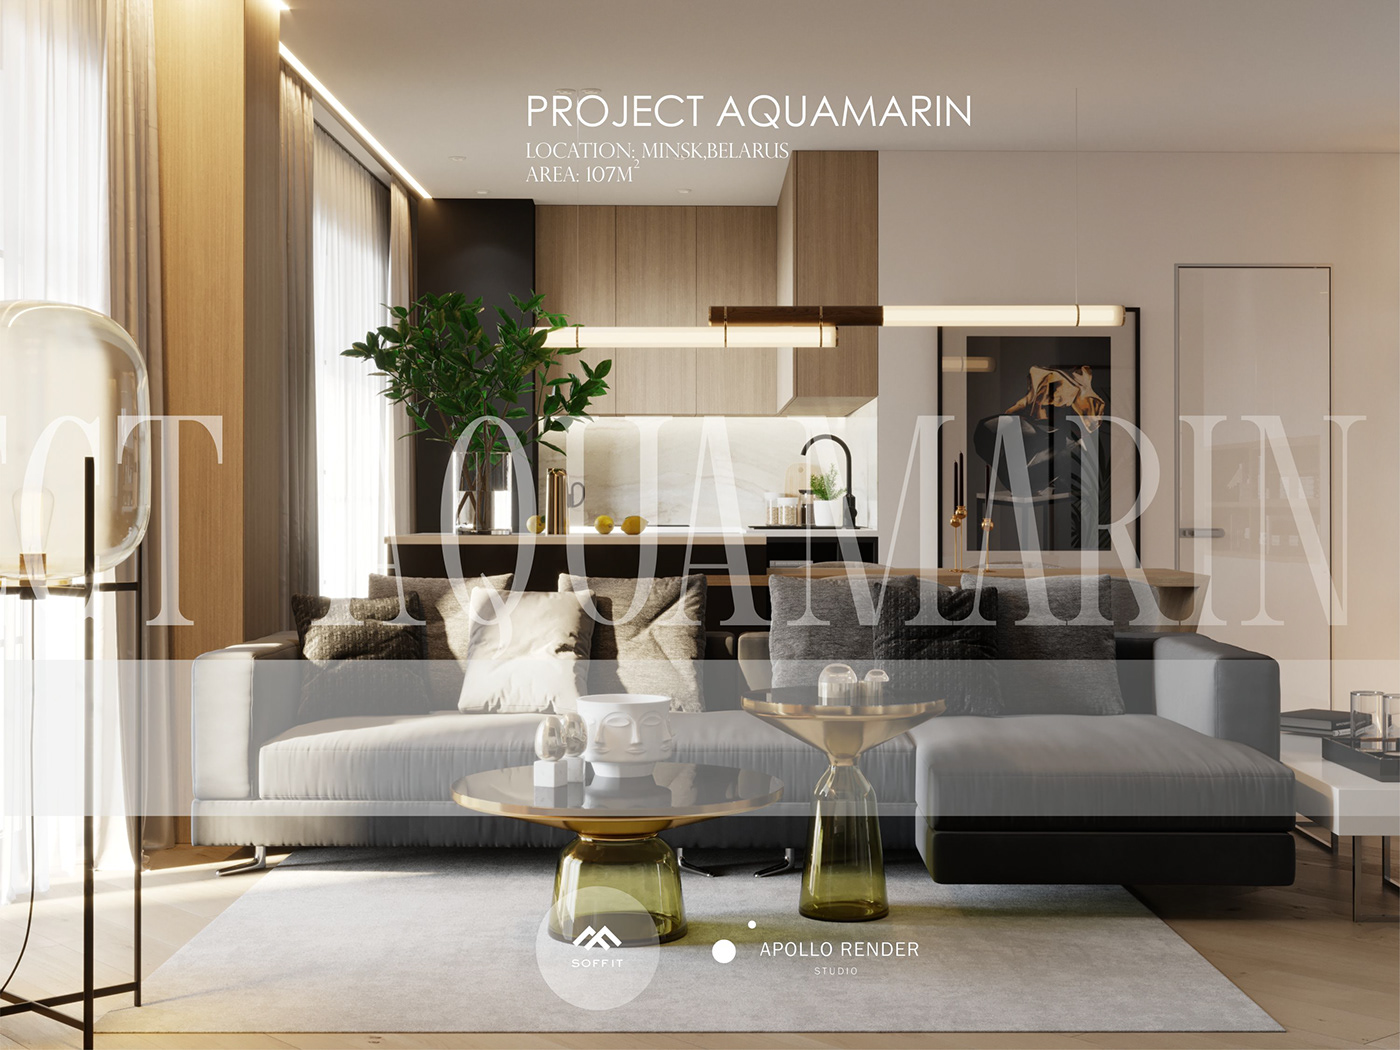 design projects architecture photo Render 3ds visualization